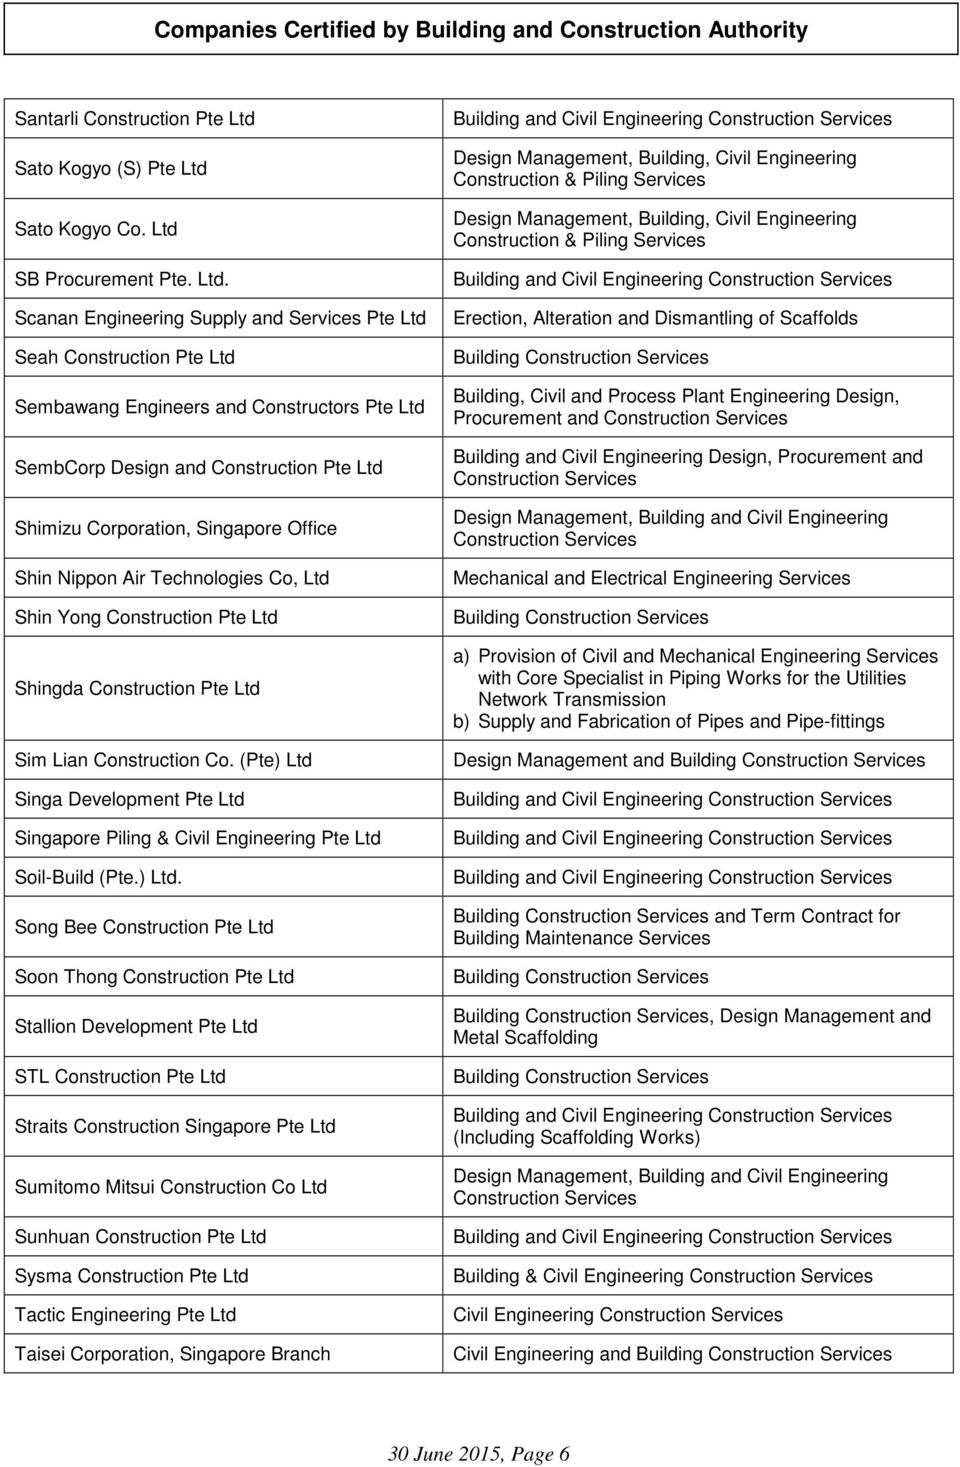 Companies Certified by Building and Construction Authority - PDF